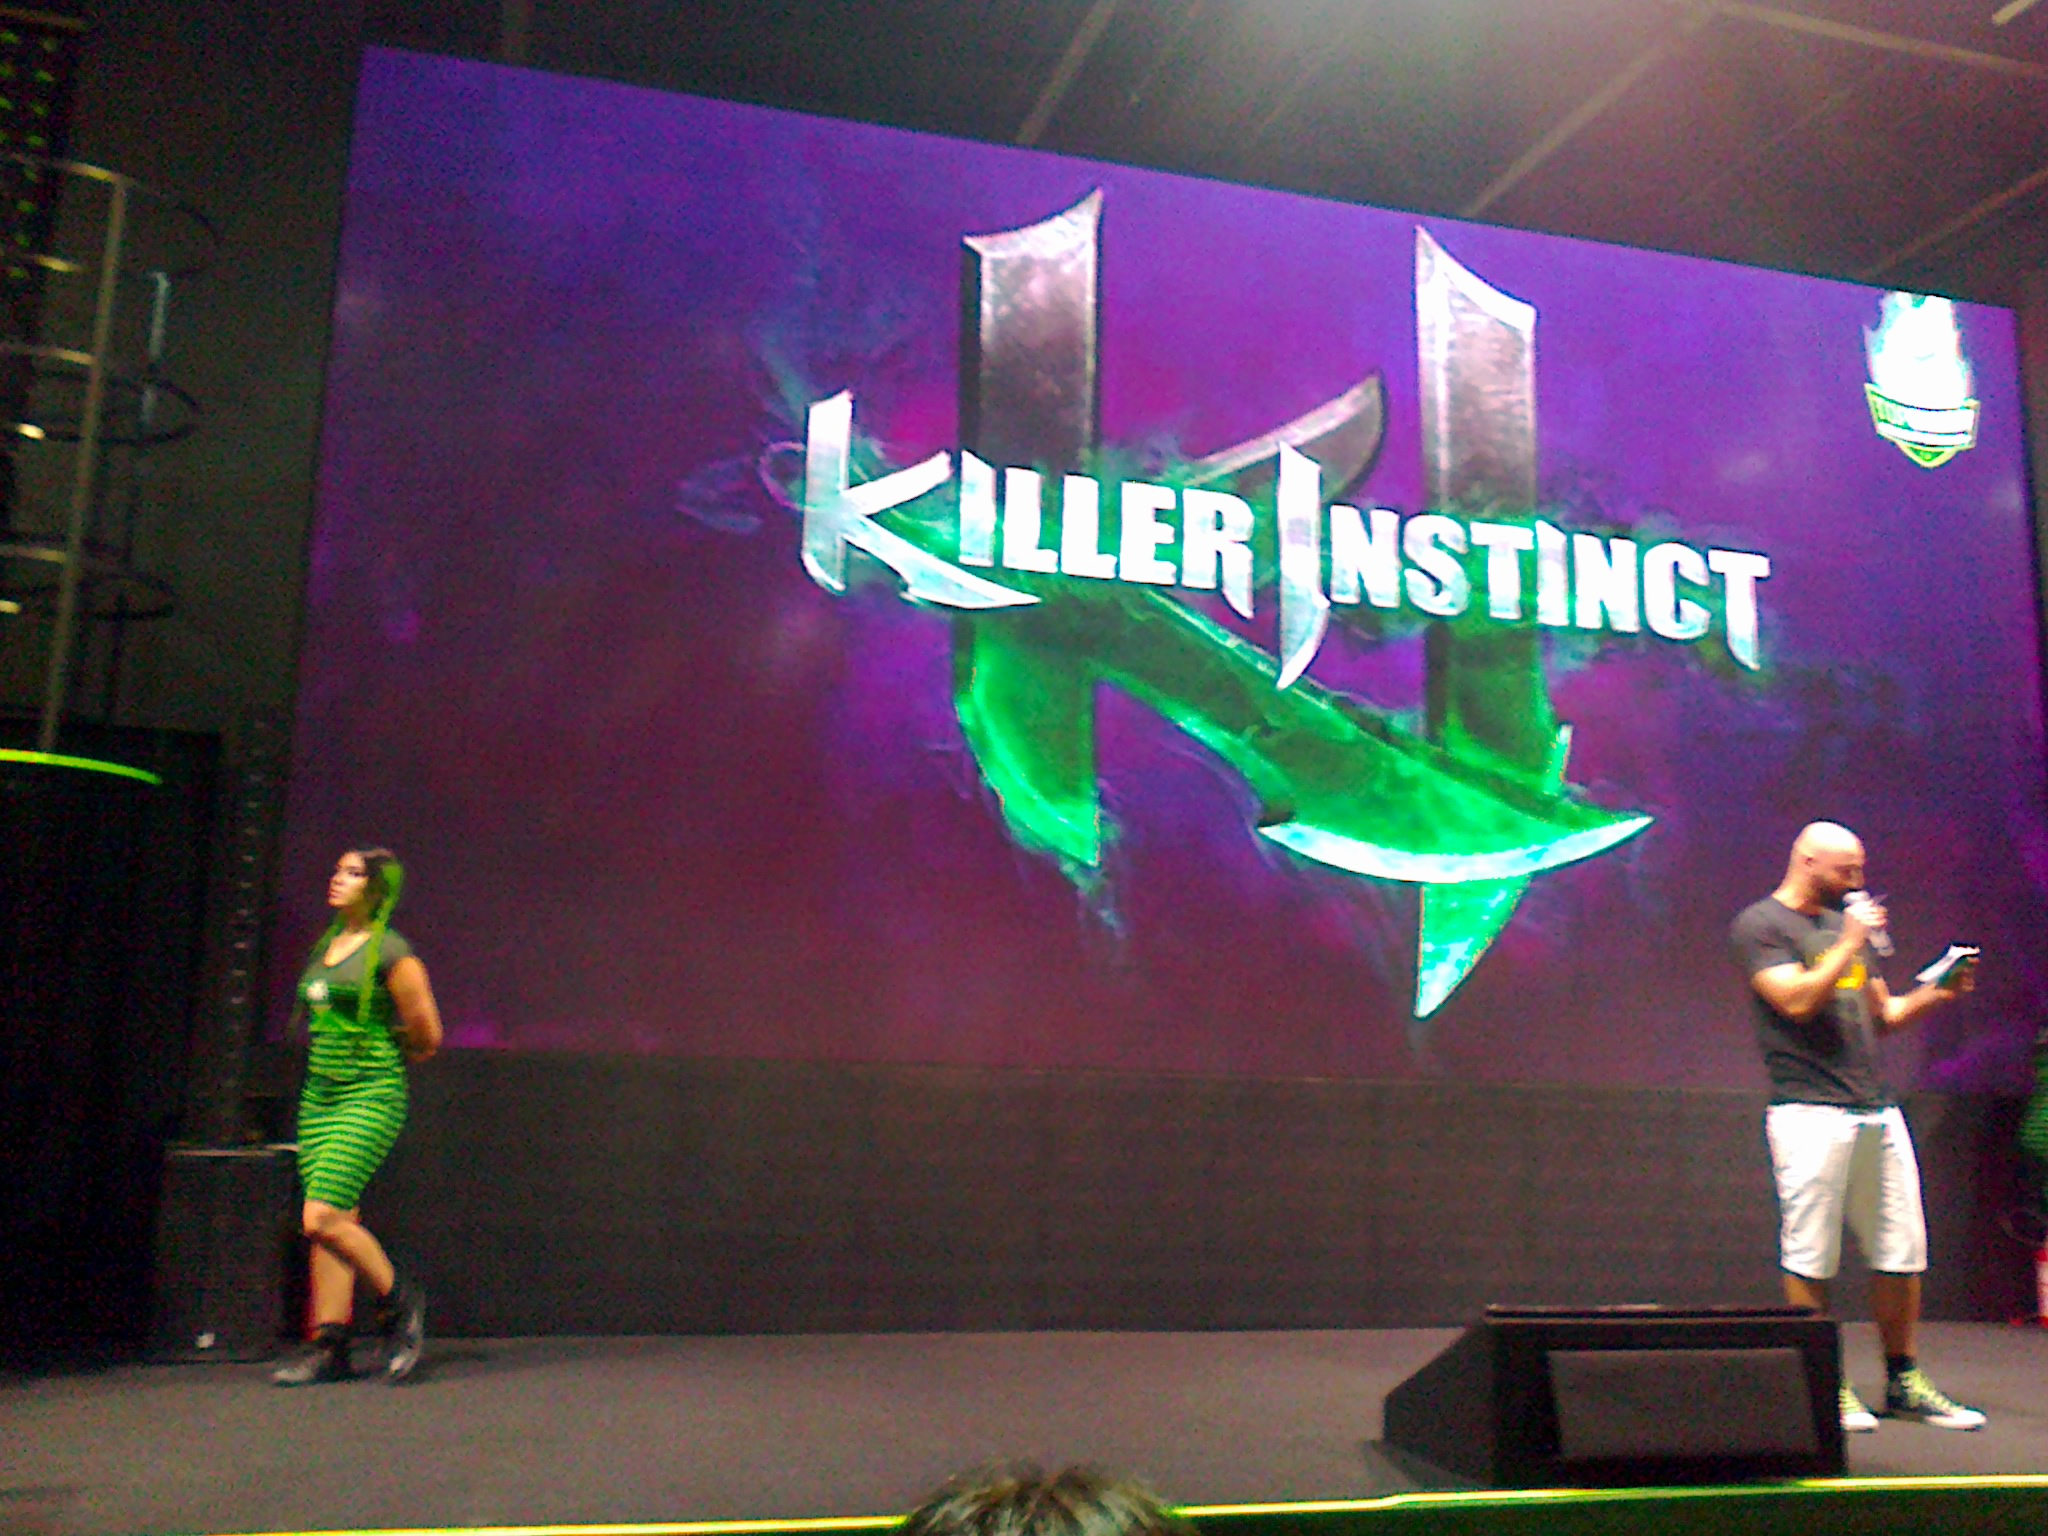 Torneio do jogo Killer Instinct.